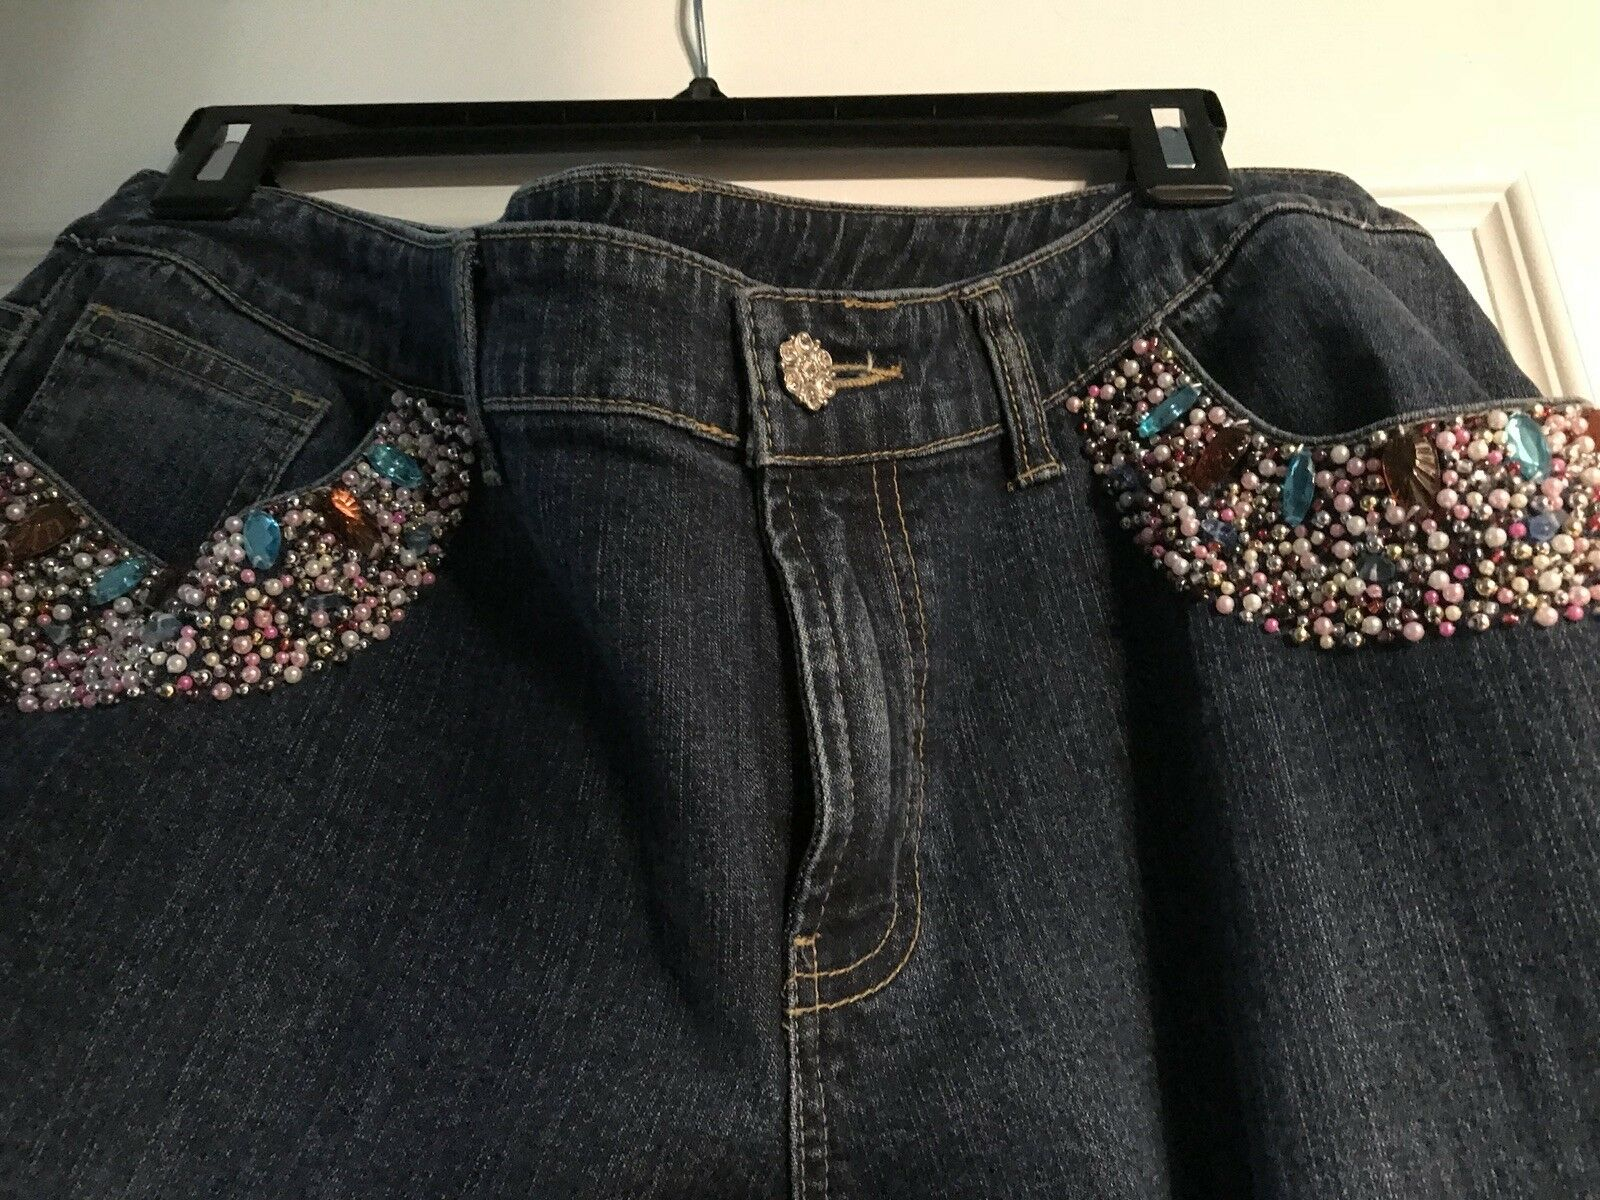 Willi Smith Stunning Jeweled Jeans Women's 14  Very Hard To Find This One